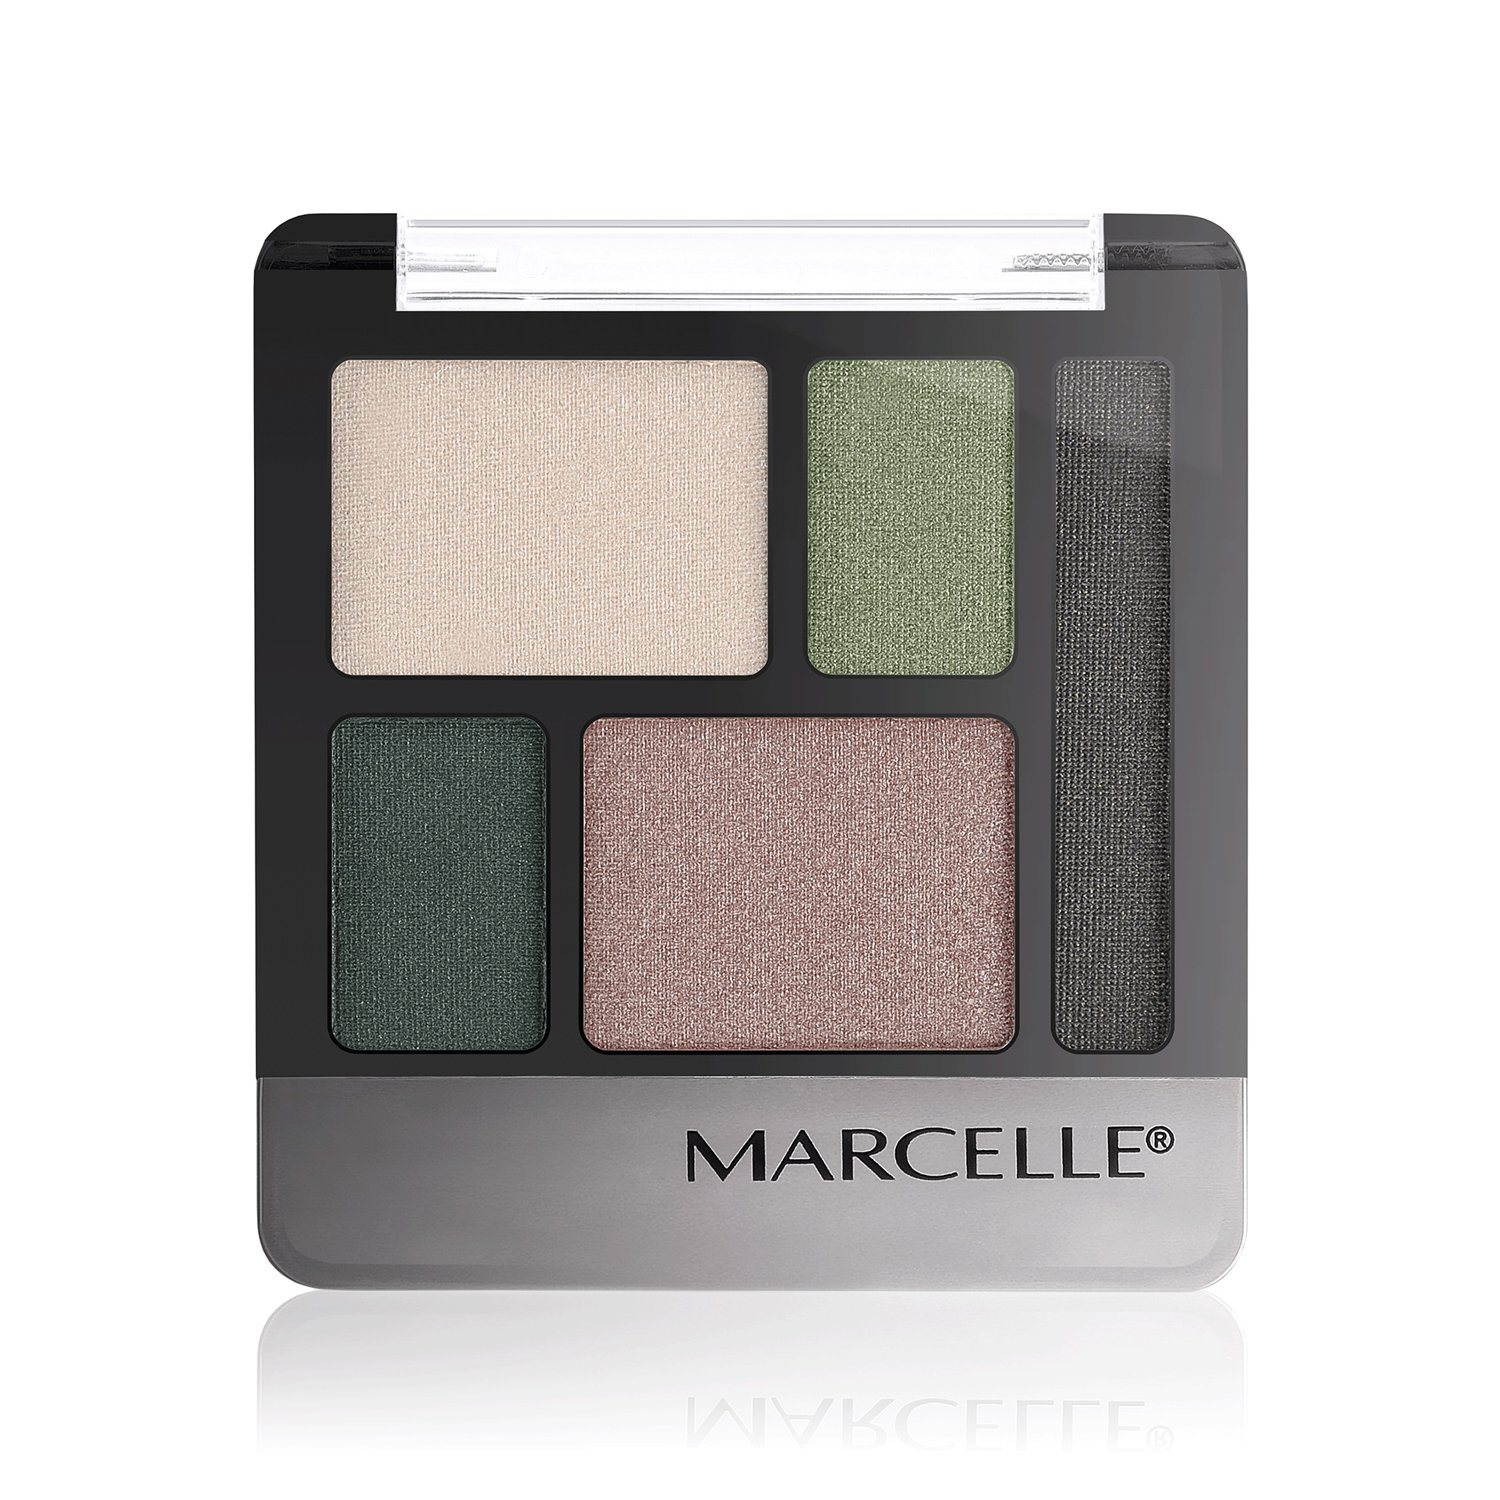 Marcelle Quintet Eyeshadow, Steel Smoke, Hypoallergenic and Fragrance-Free, 0.20 oz Marcelle group - Beauty